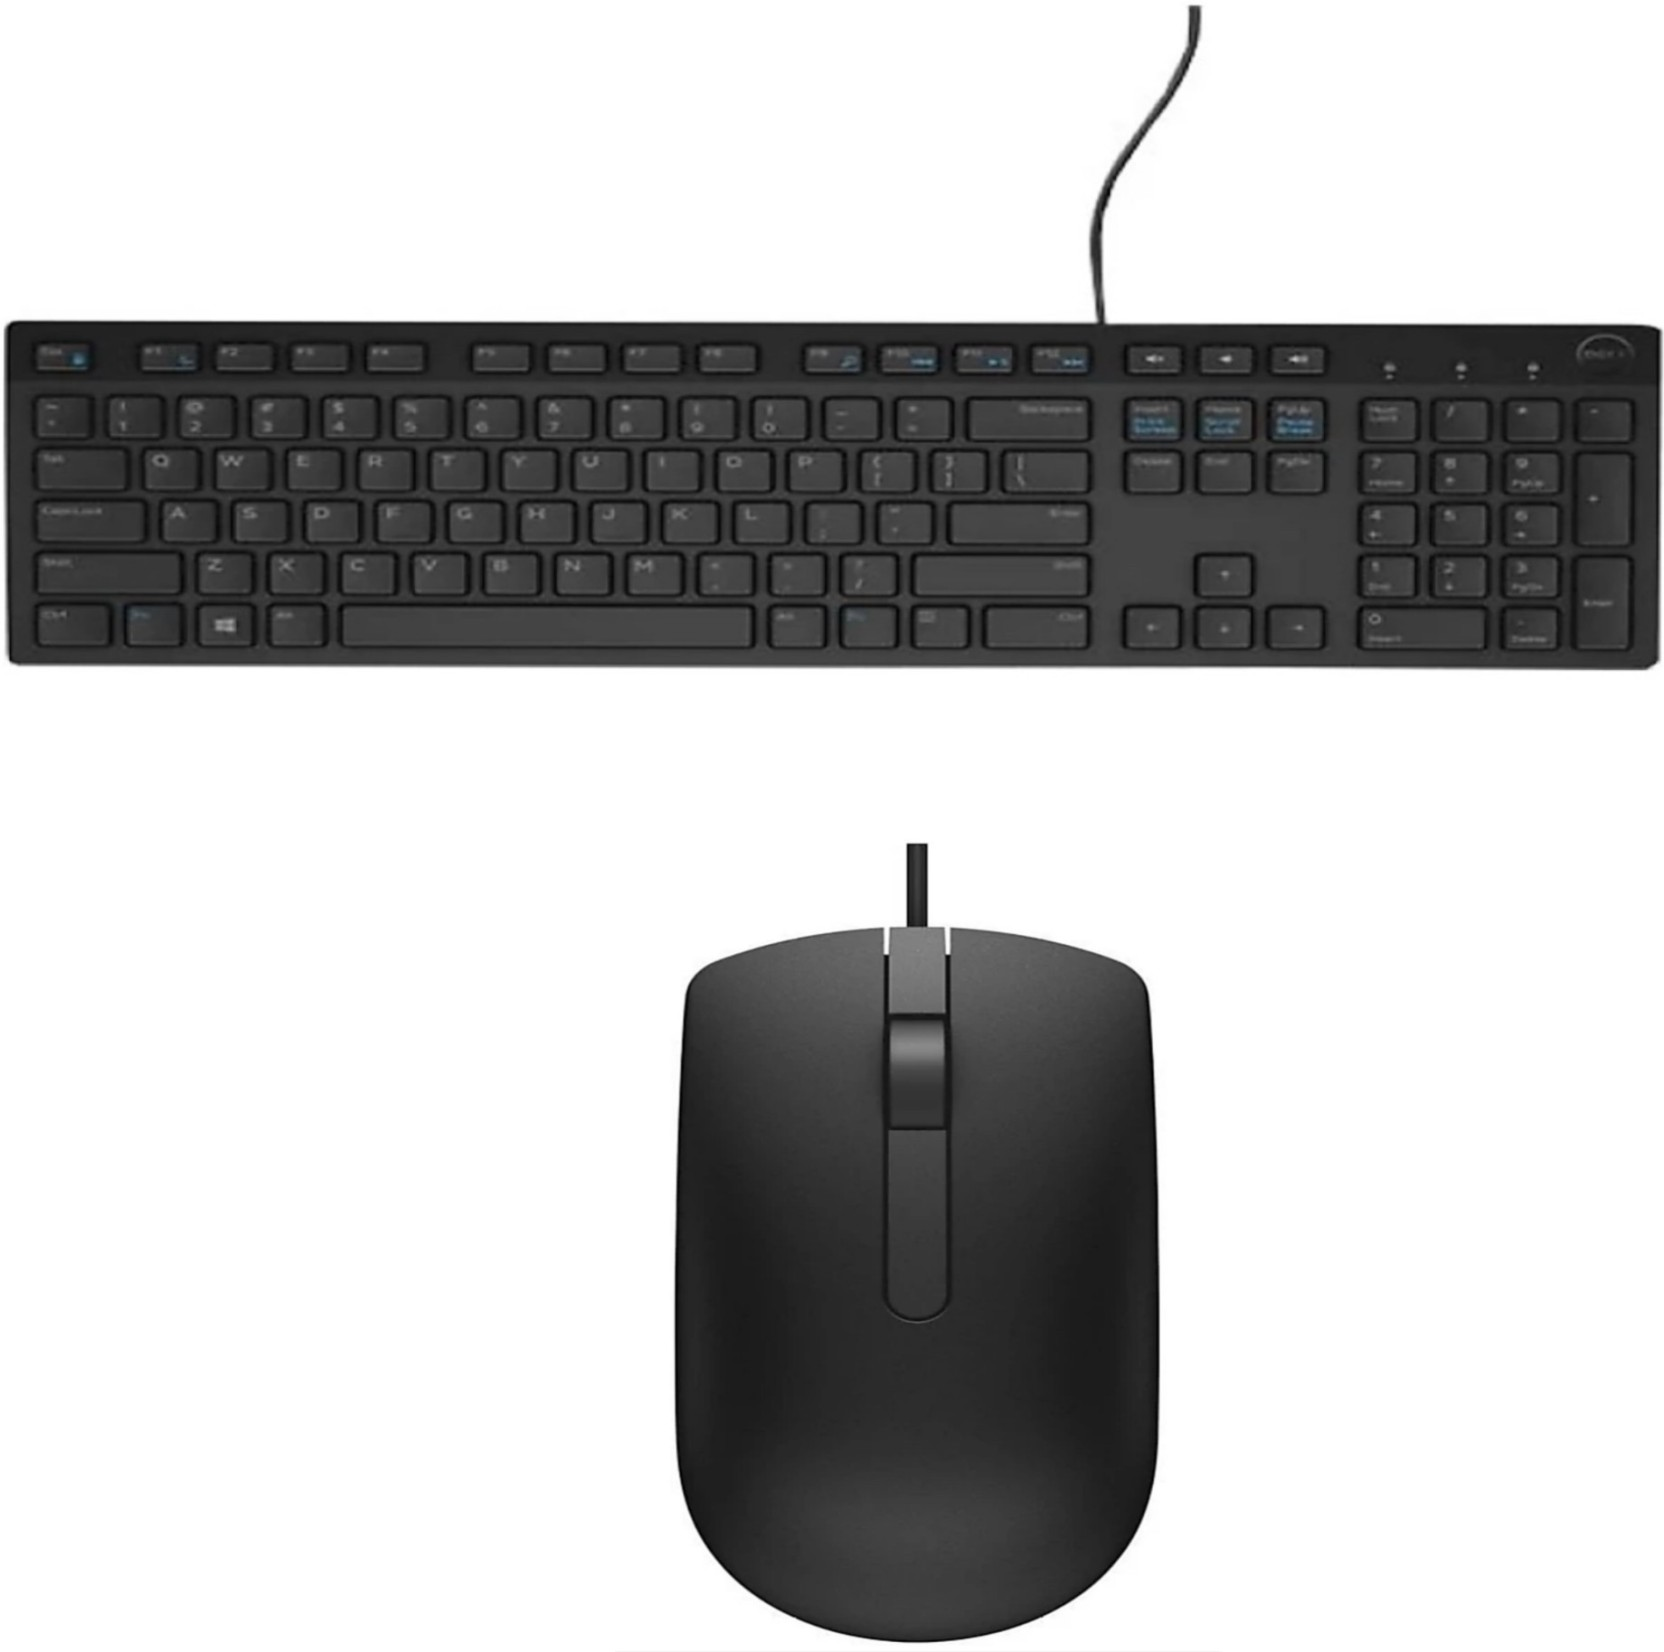 Dell keyboard and mouse set *New In Box* Multimedia keyboard and optical mouse